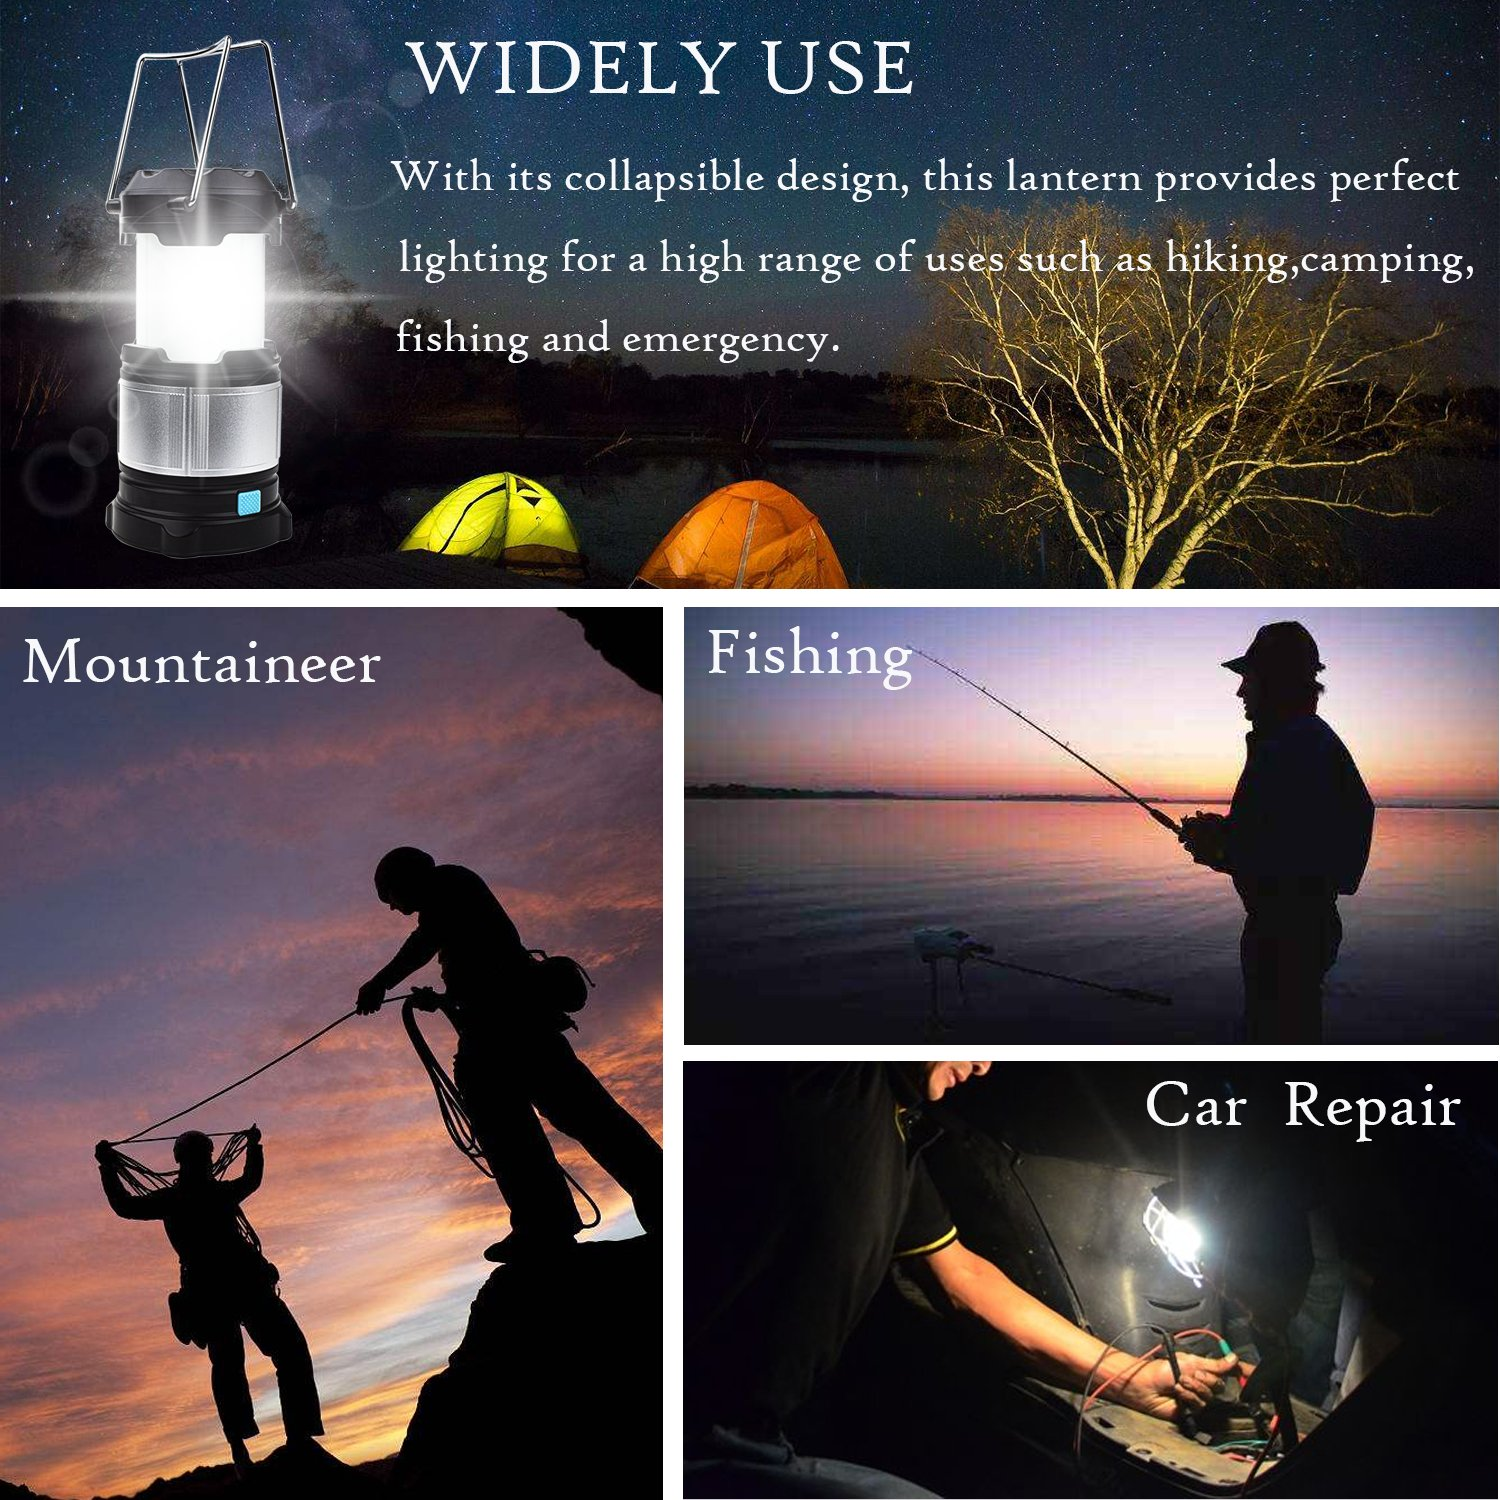 Alcoon Rechargeable LED Camping Lantern Light Lamp with 5600mAh Power Bank, Portable Collapsible Waterproof Outdoor Light with 18650 Li-ion Batteries for Camping Traveling Tent, Emergency, Outage by Alcoon (Image #6)